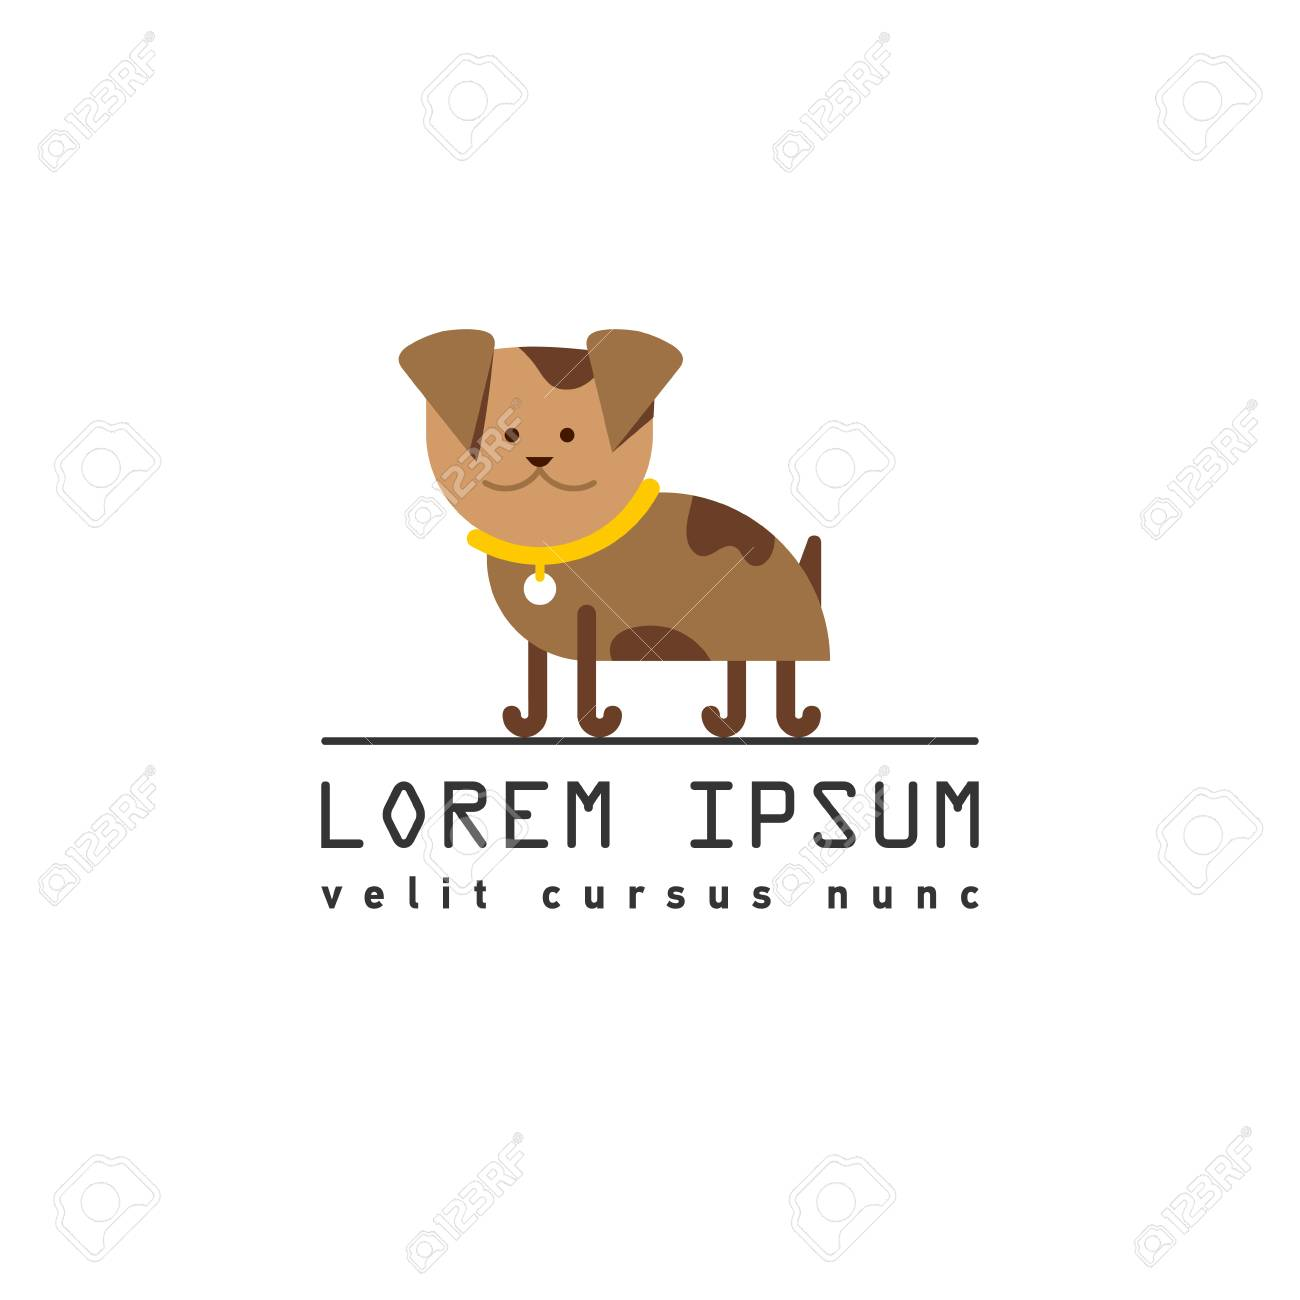 Dog Logo Template Cute Puppy Logotype Royalty Free Cliparts